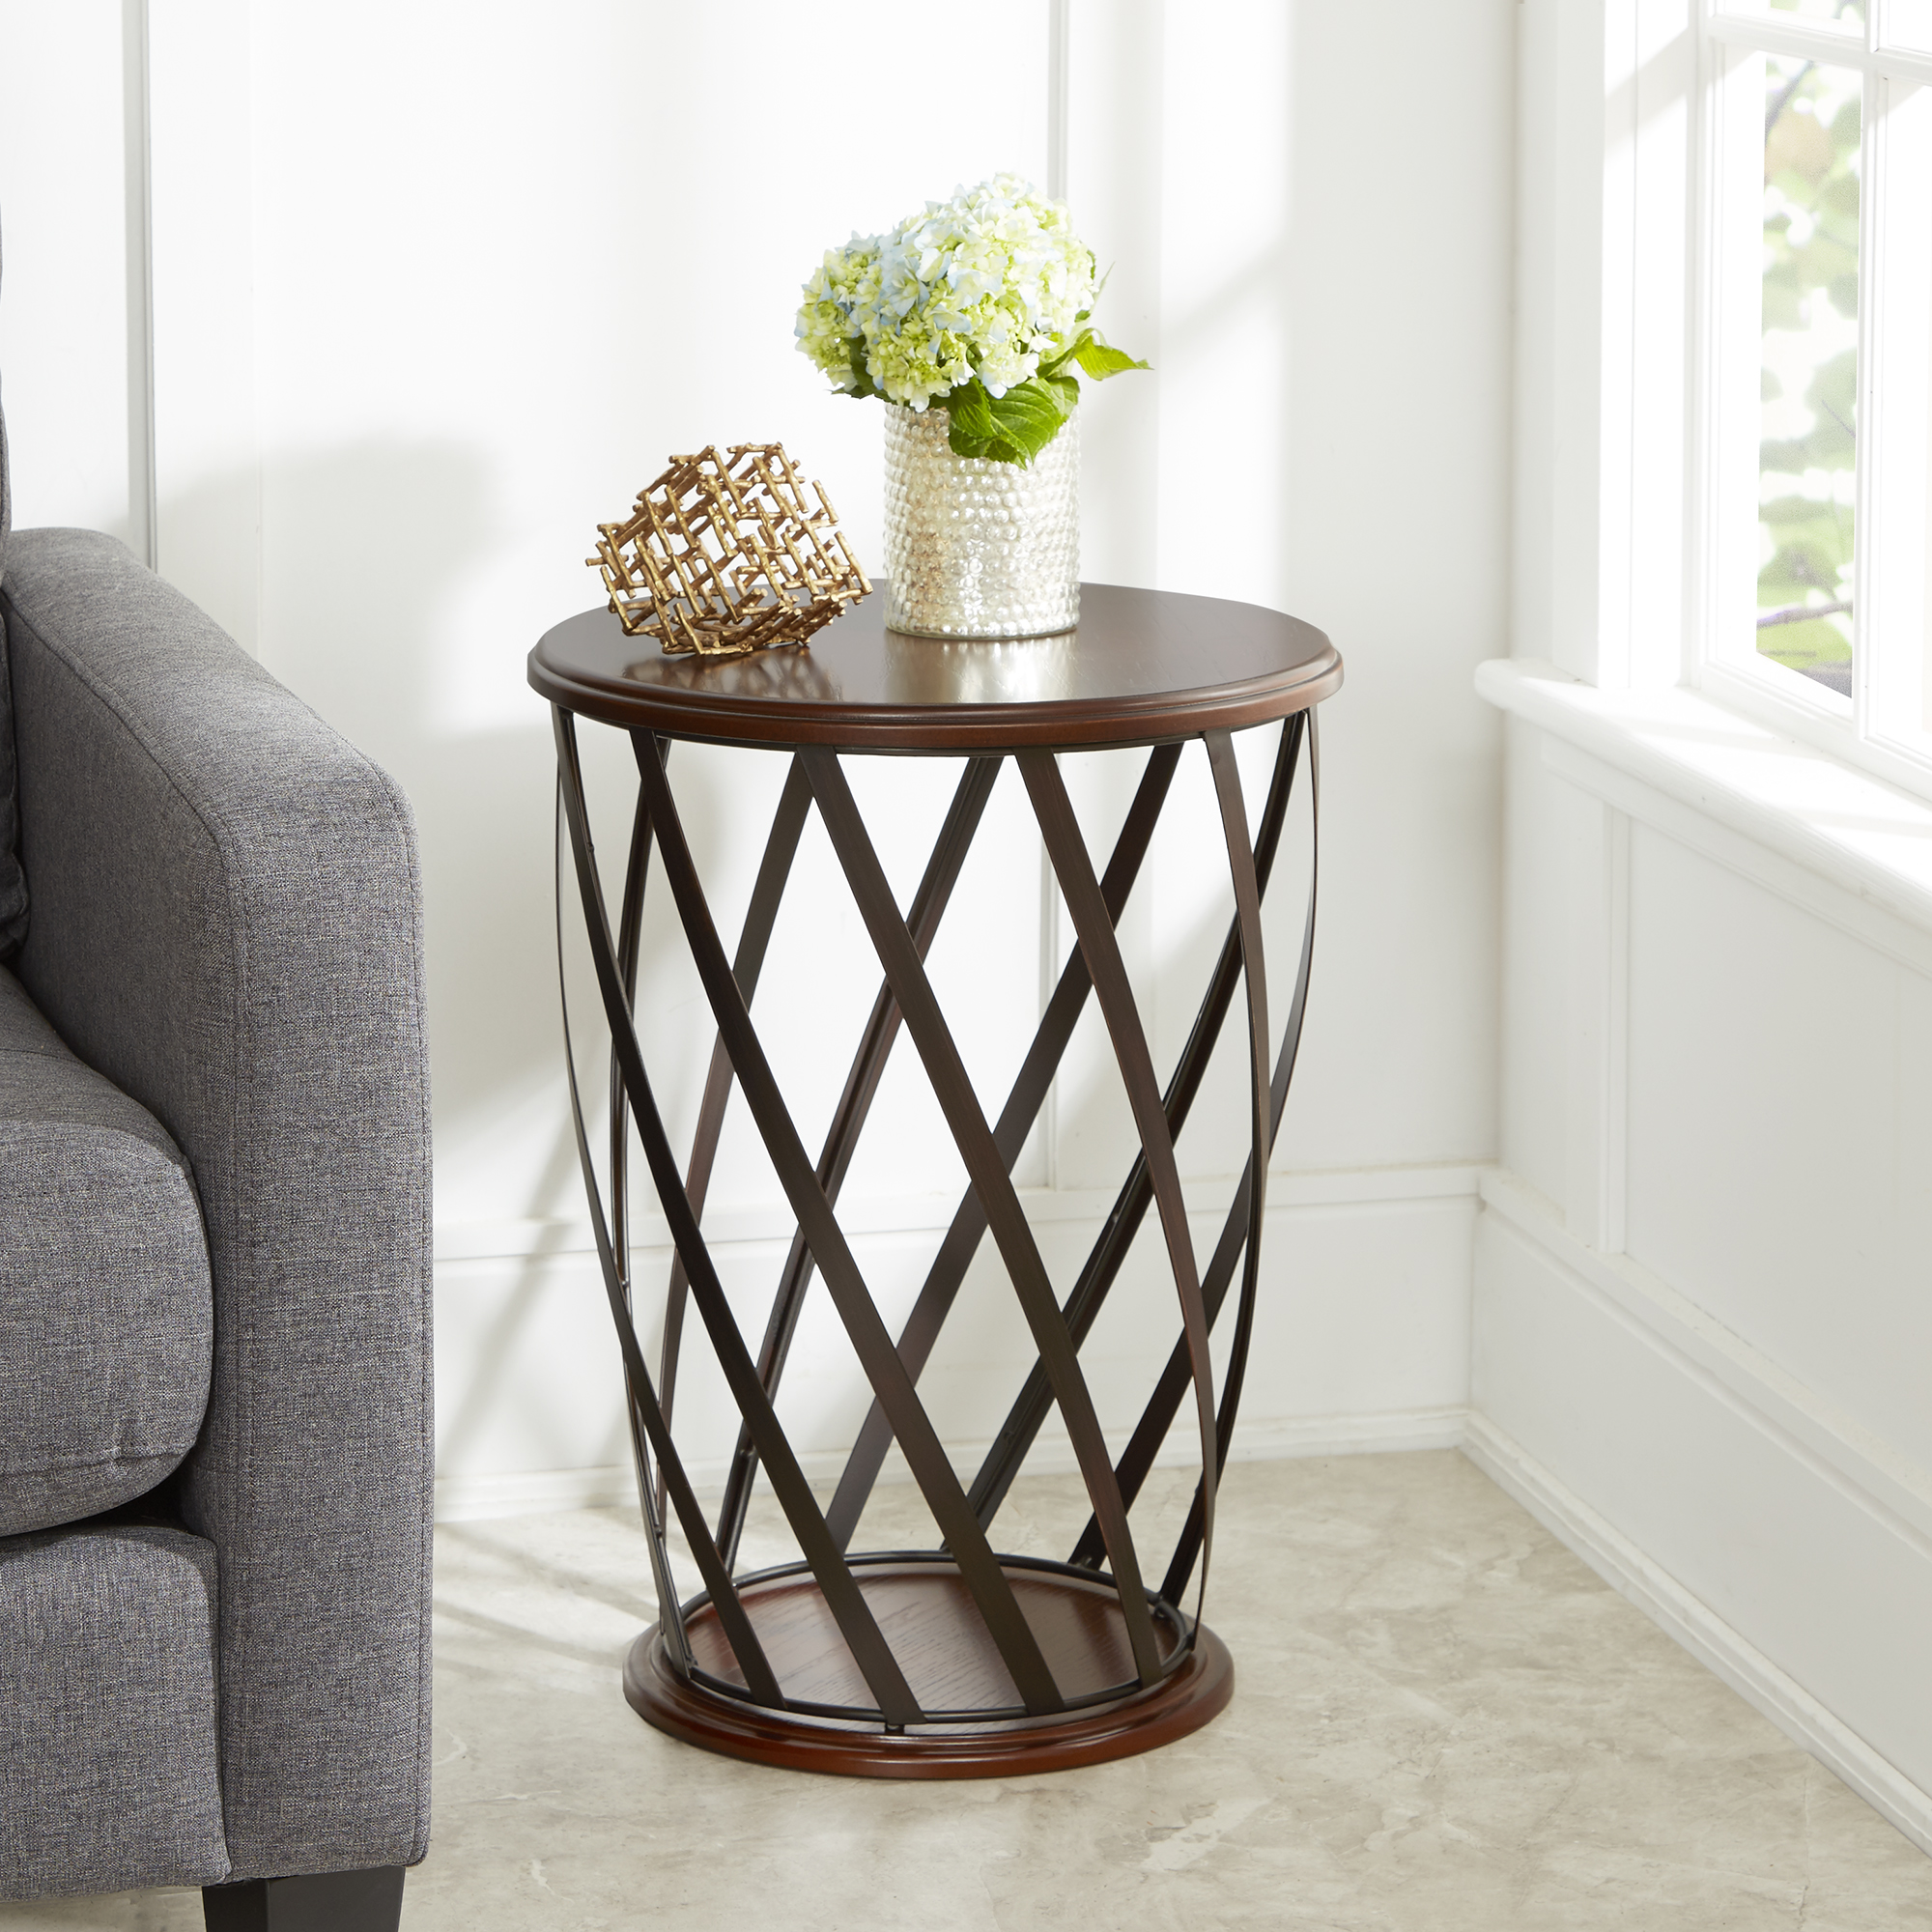 Better Homes & Gardens Industrial Cage Metal and Wood Accent Table